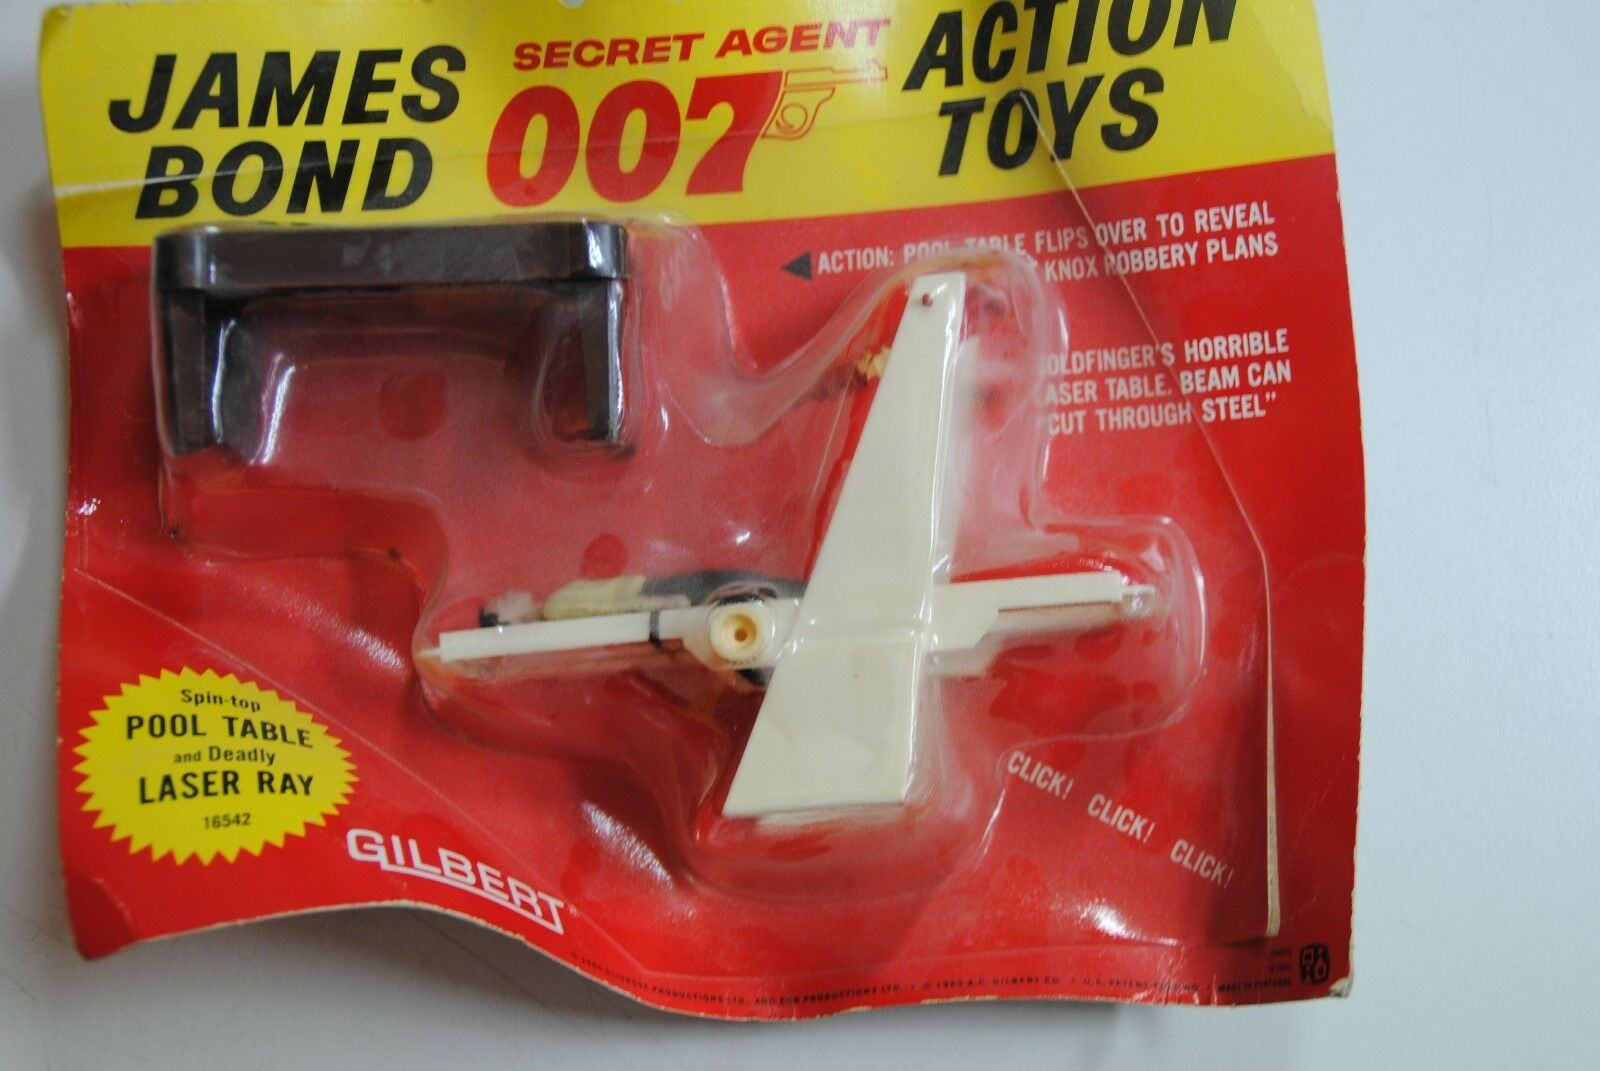 Gilbert 1965, James Bond, agente 007, Mesa de billar y láser.